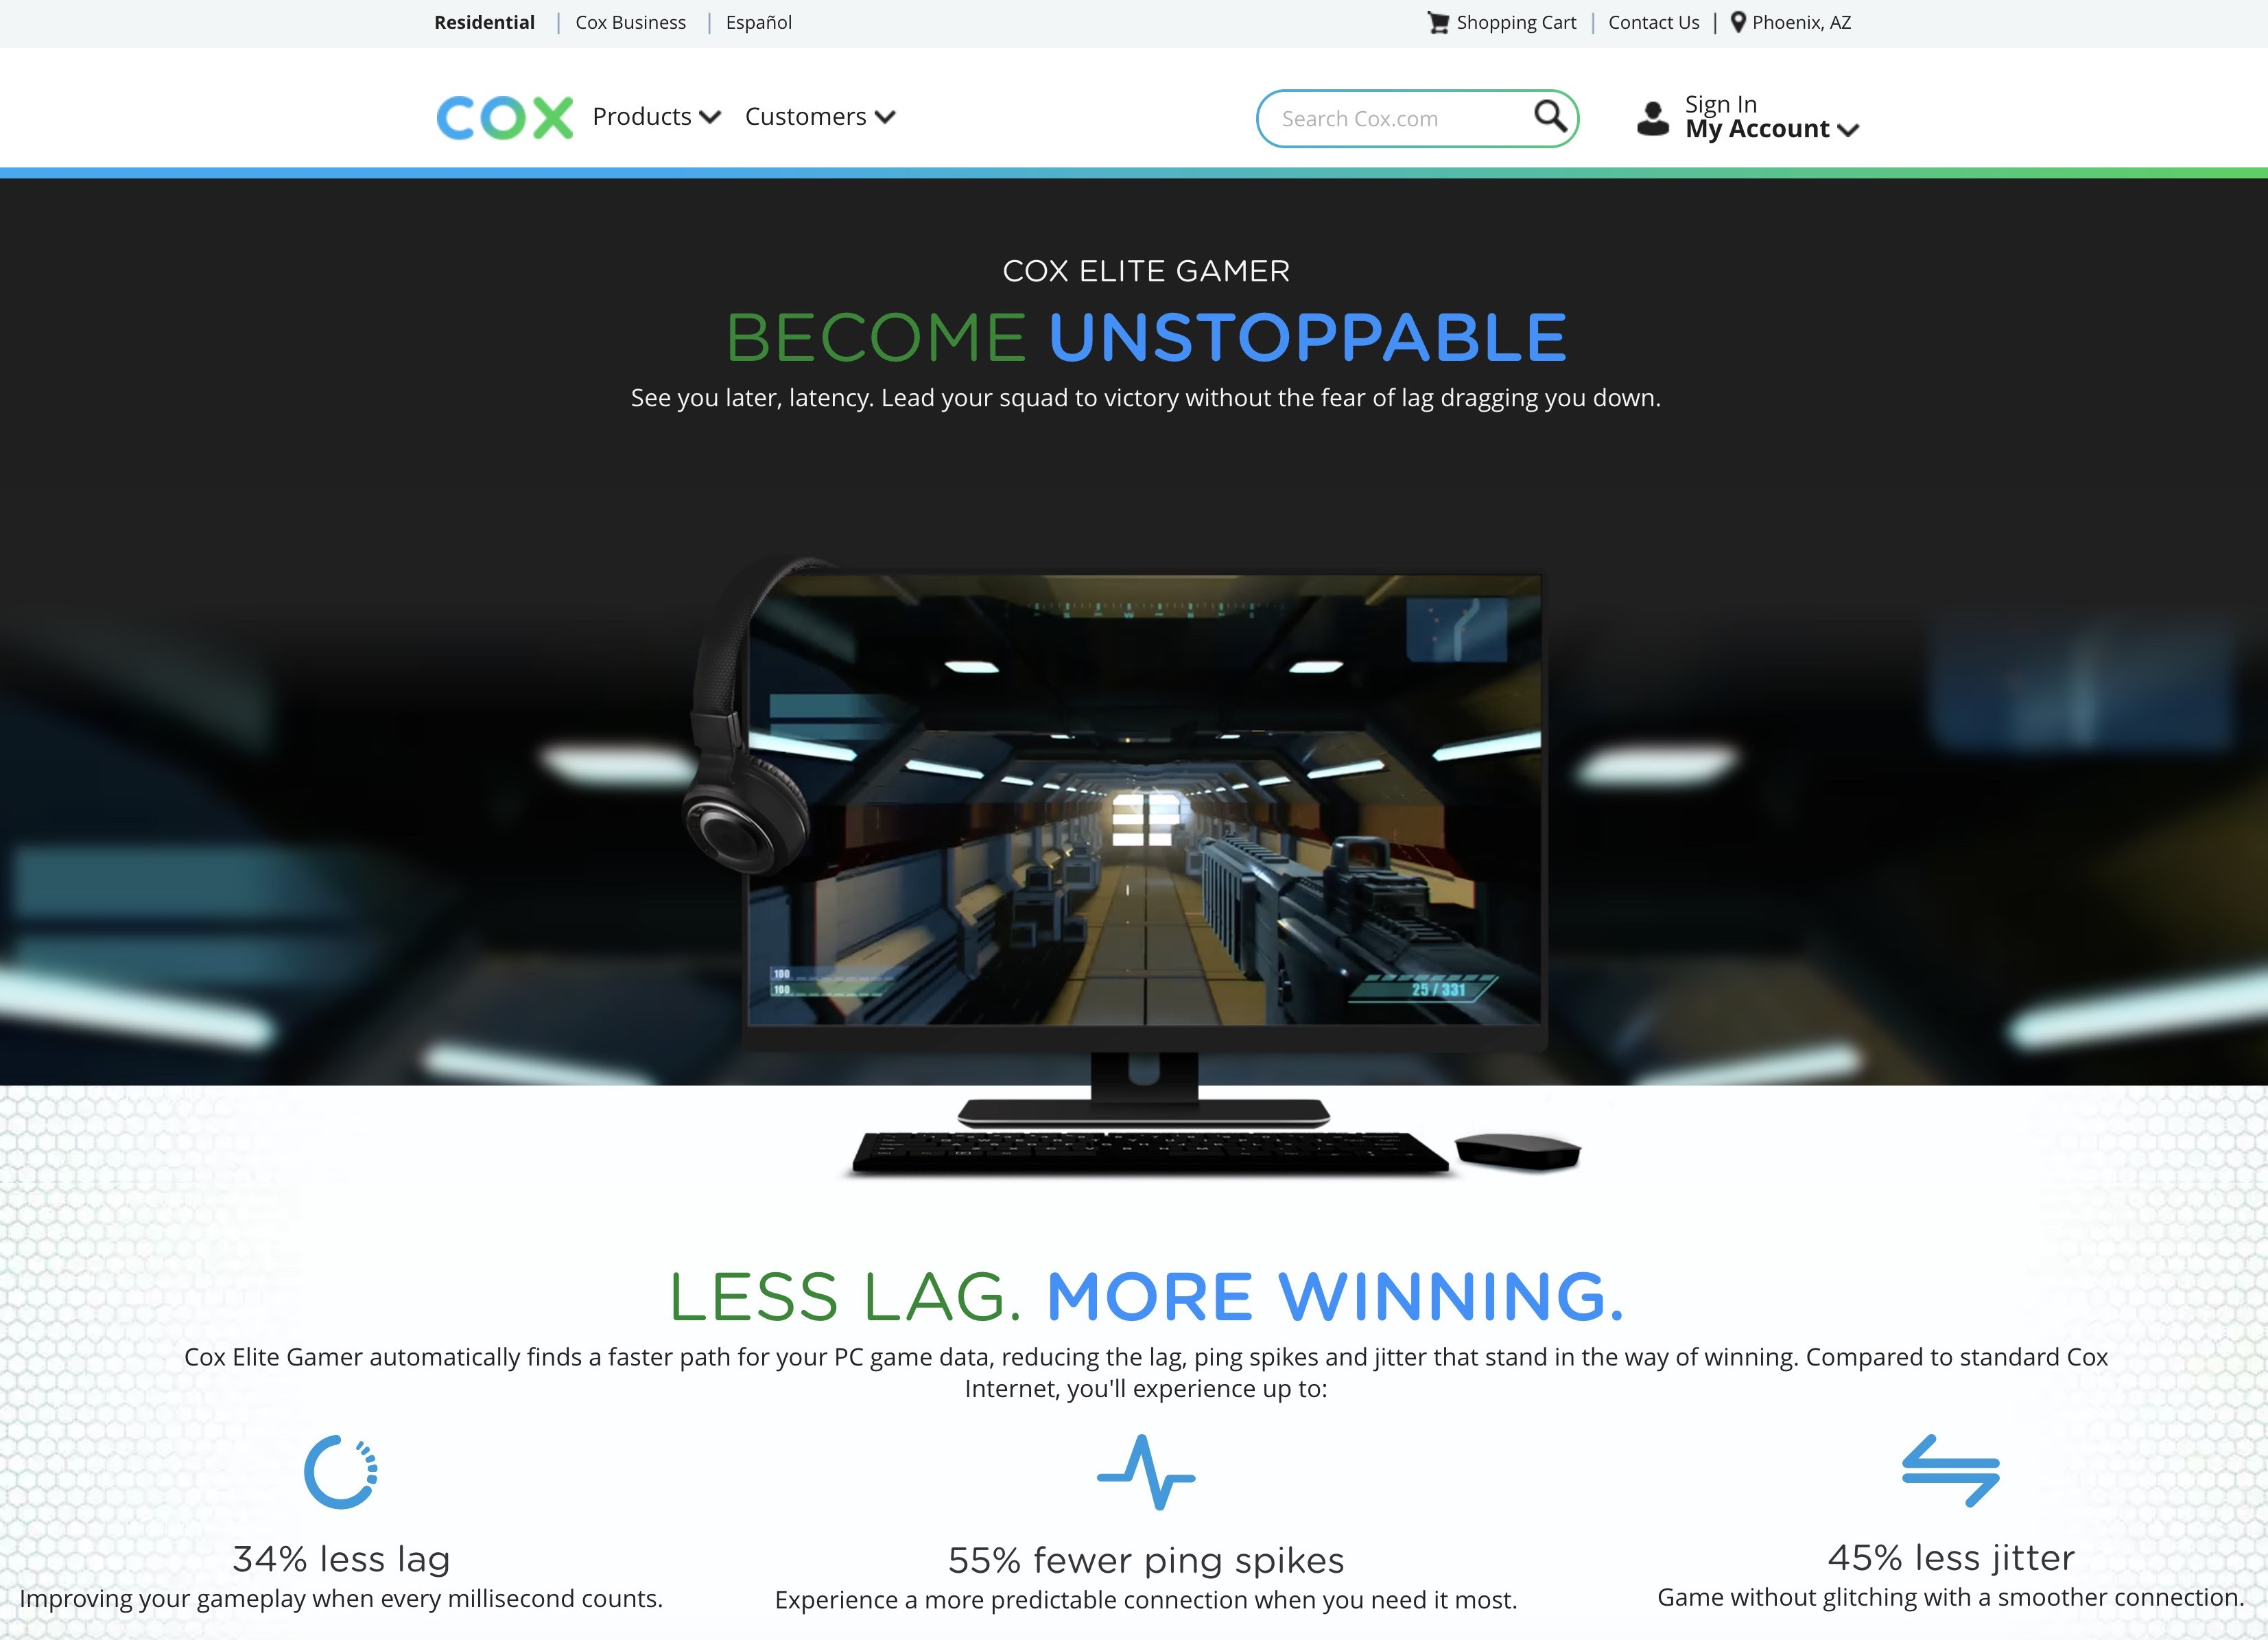 Cox Internet now charges $15 extra for faster access to online game